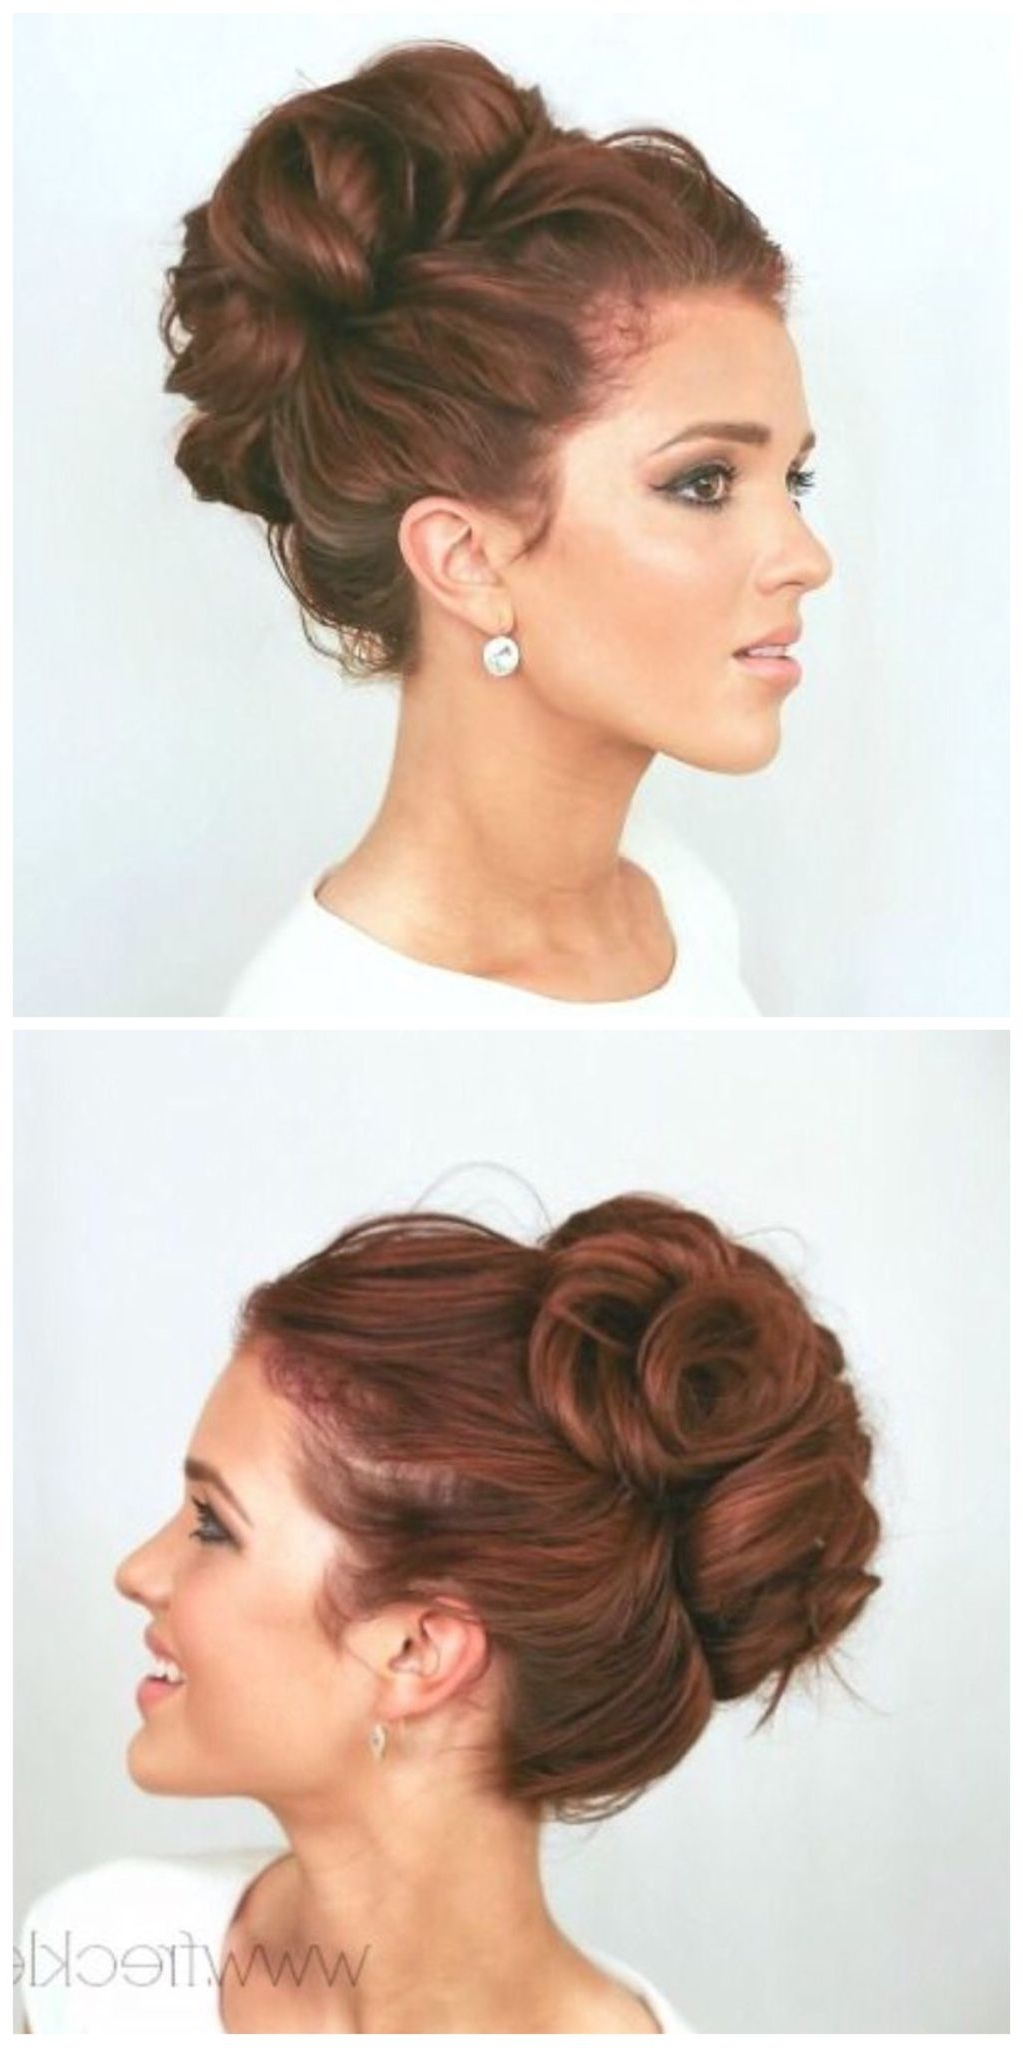 Wedding Hairstyles | Elegant Bun, Elegant And Hair Style In Updo Buns Hairstyles (View 8 of 15)